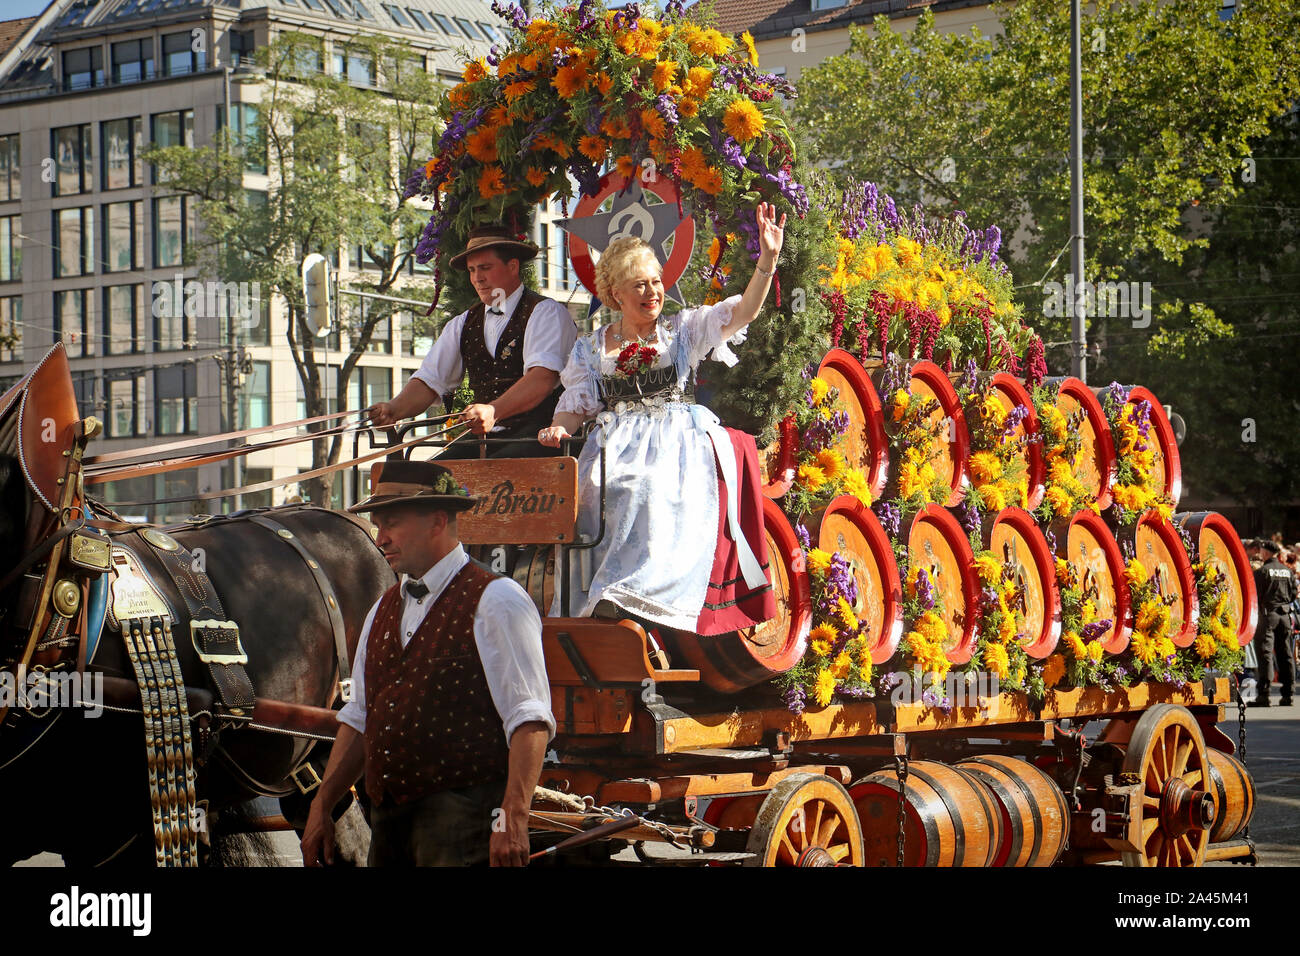 MUNICH, GERMANY - SEPTEMBER 22, 2019 Grand entry of the Oktoberfest landlords and breweries, festive parade of magnificent decorated carriages and ban Stock Photo